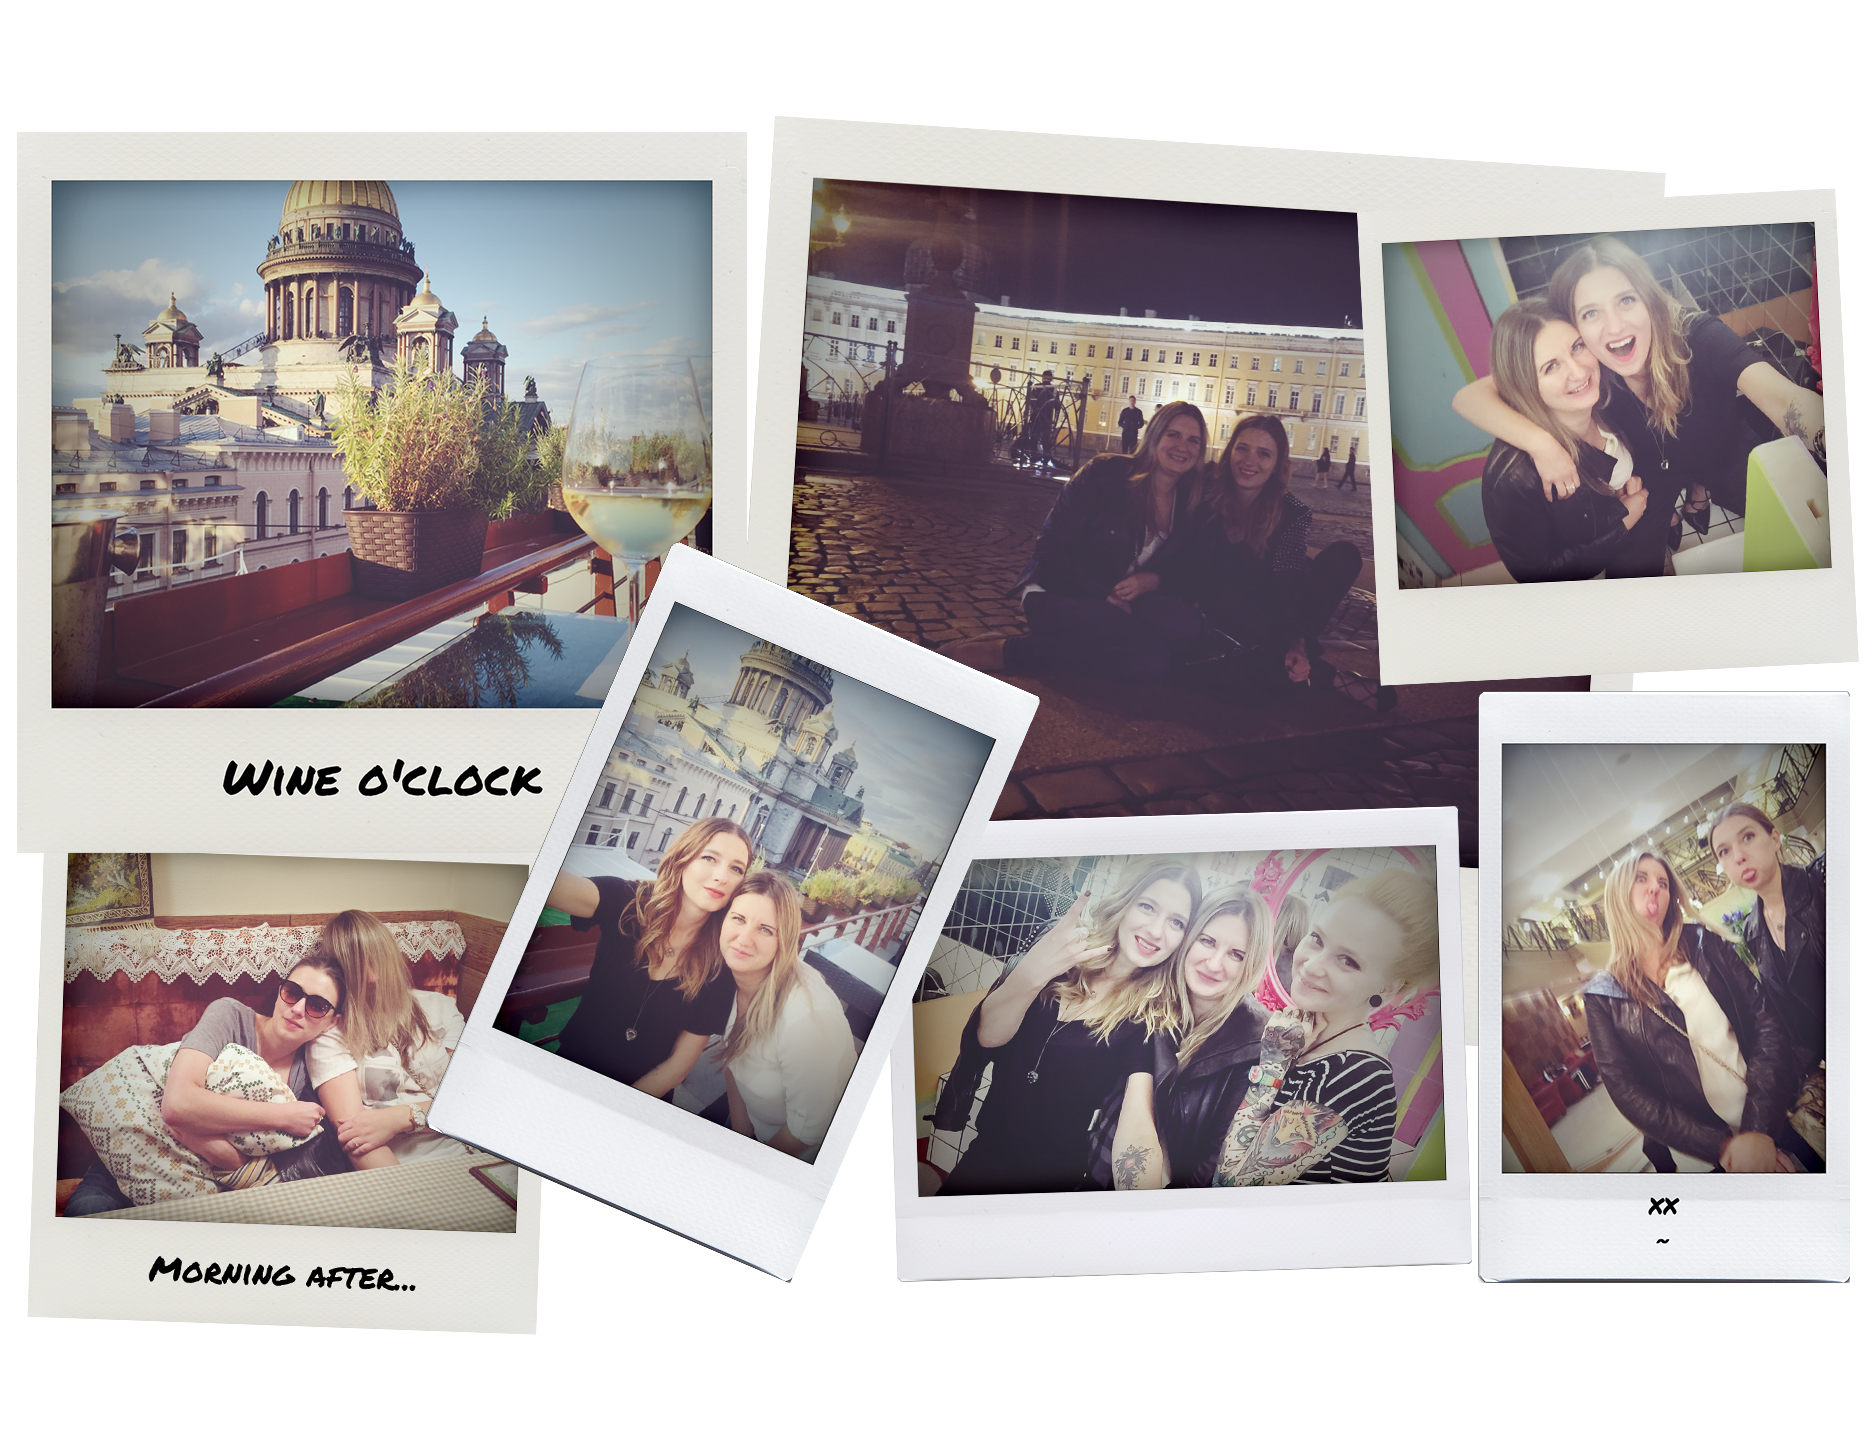 saint petersburg polaroid shots of city fun timnes